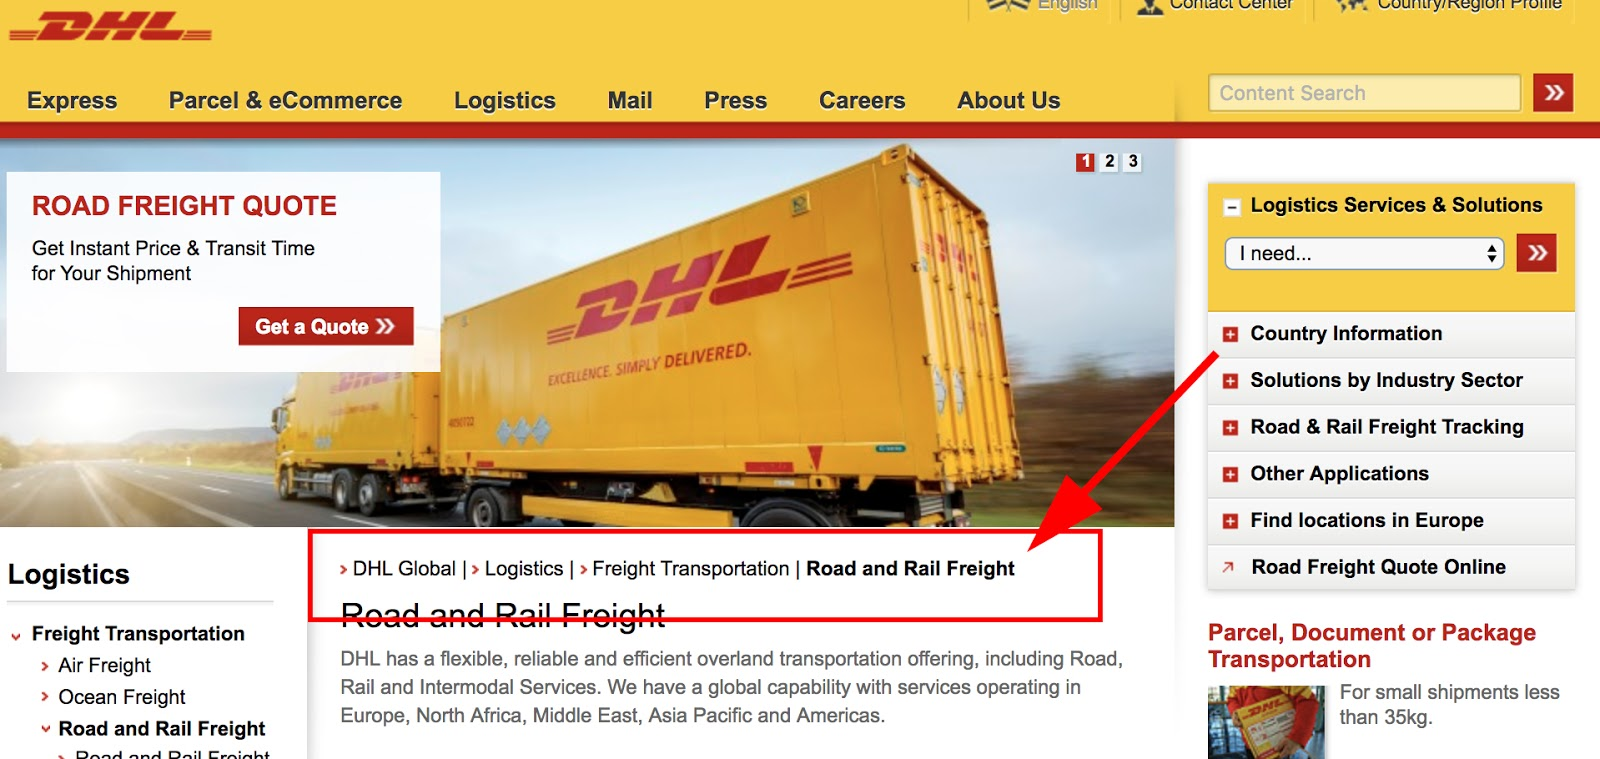 an example of breadcrumb navigation on the DHL website